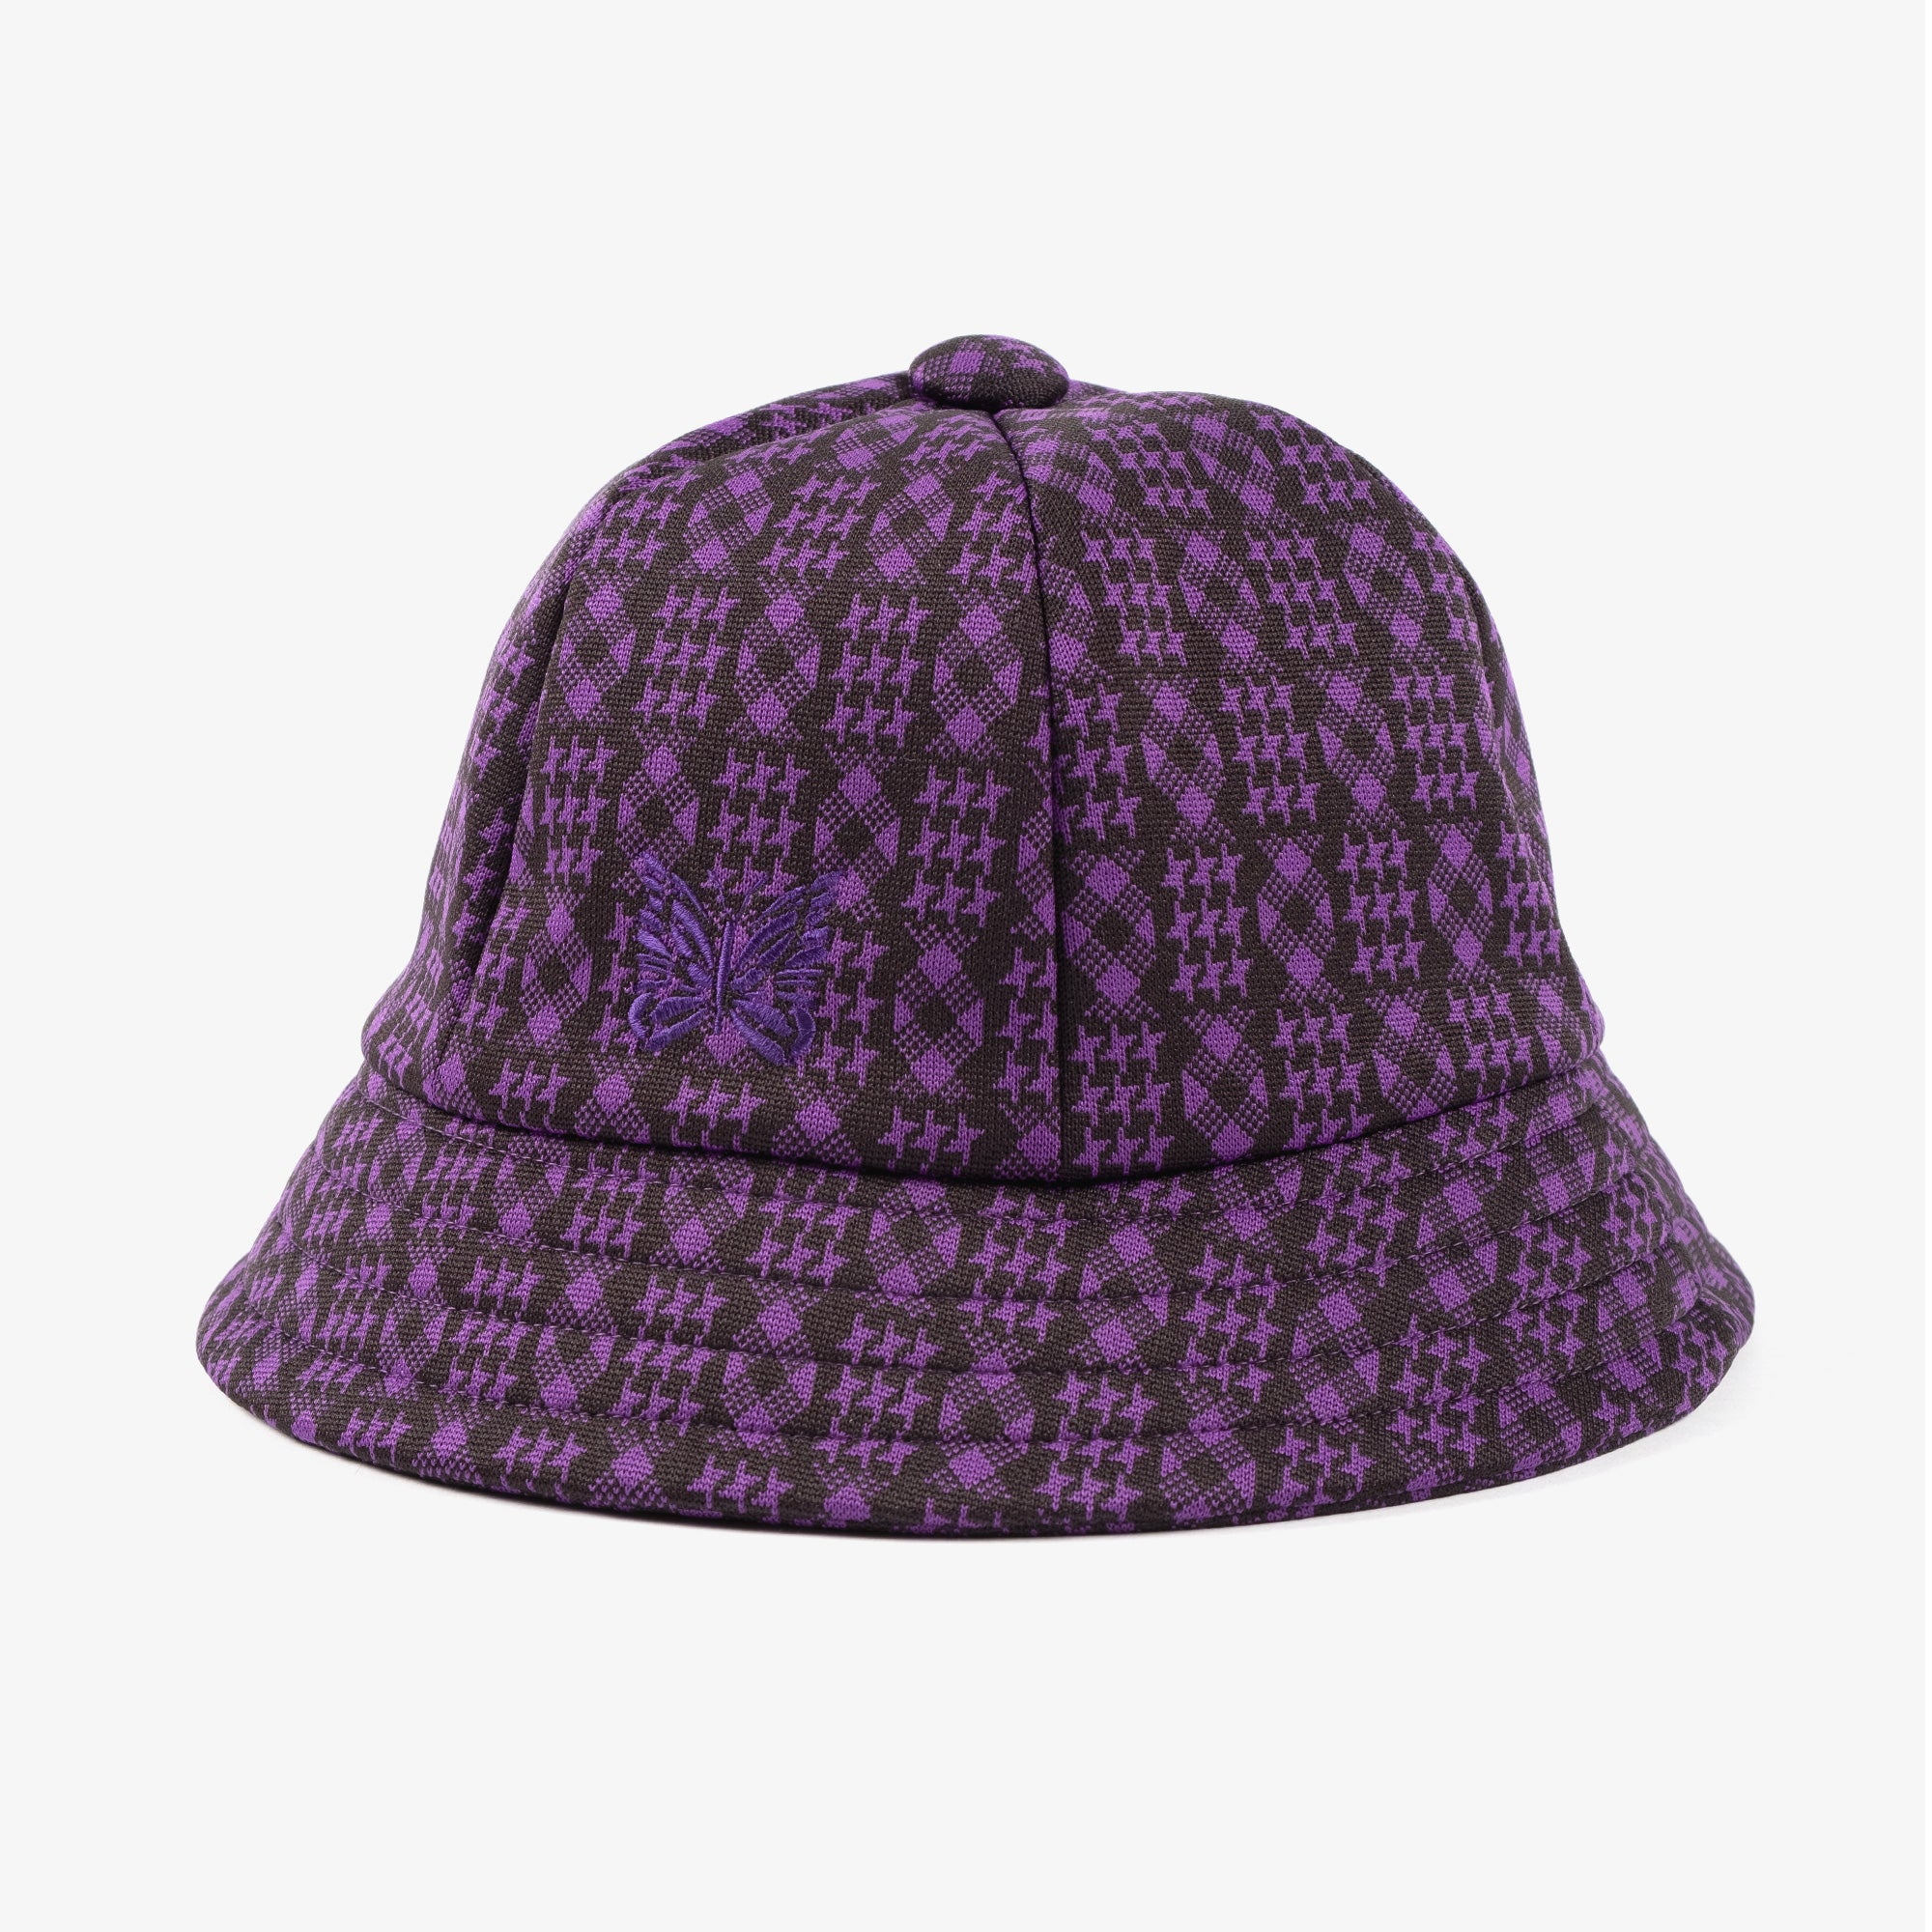 Needles Bermuda Hat - Poly Jacquard Houndstooth 1